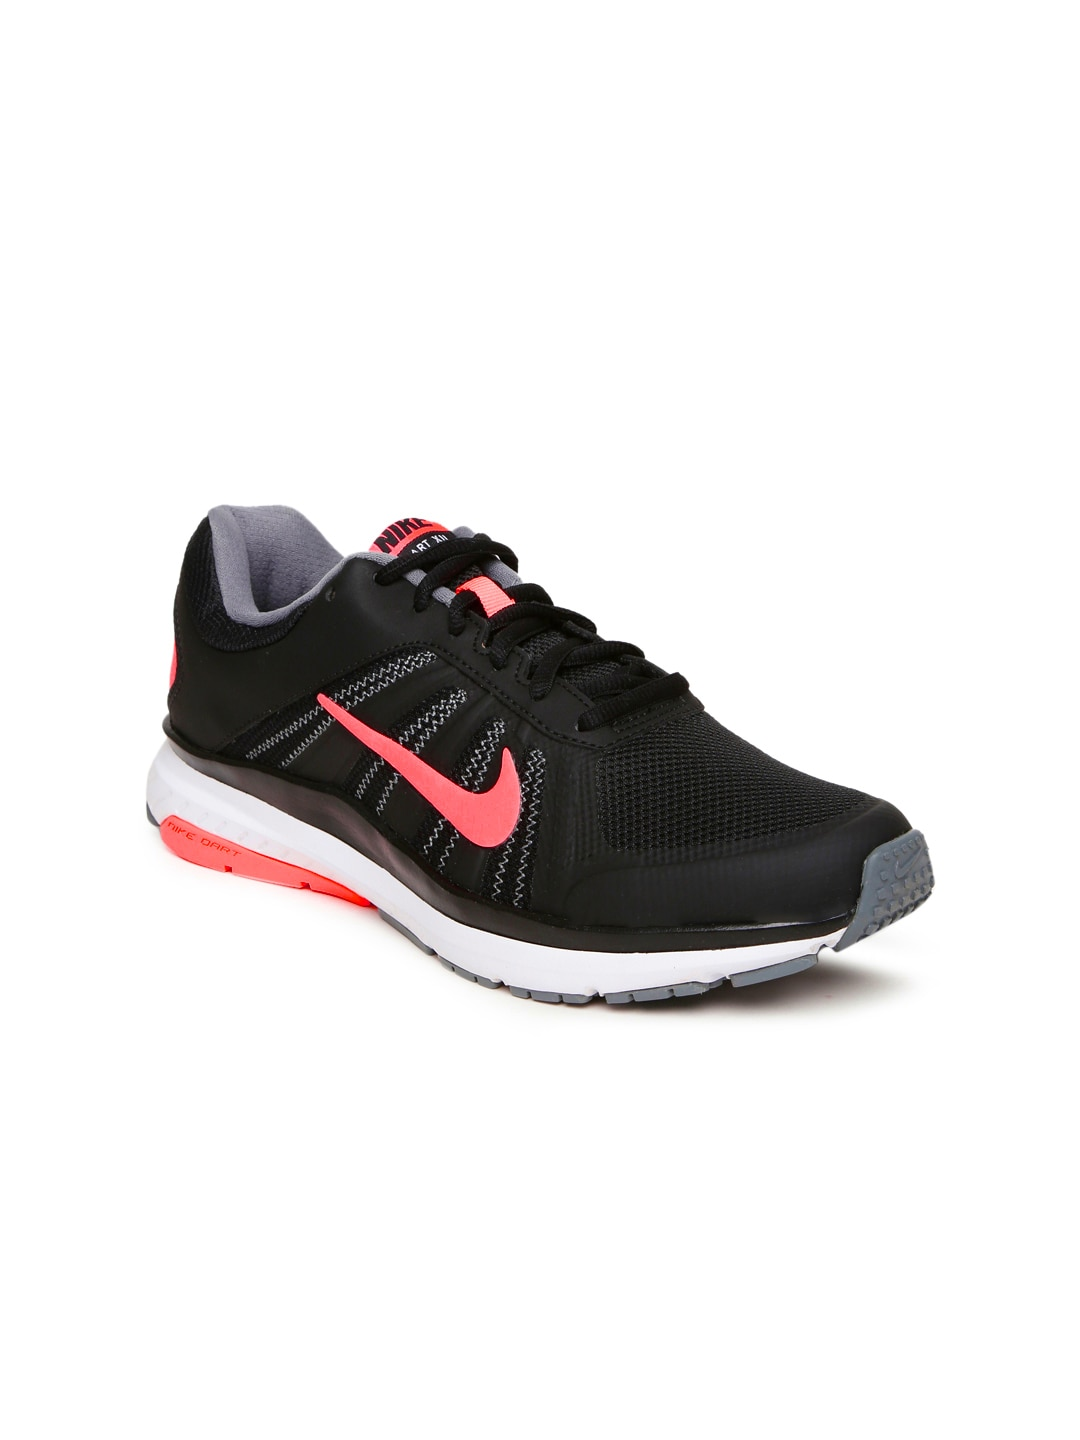 Online For Sports Women Shoes Buy Myntra 01zgP